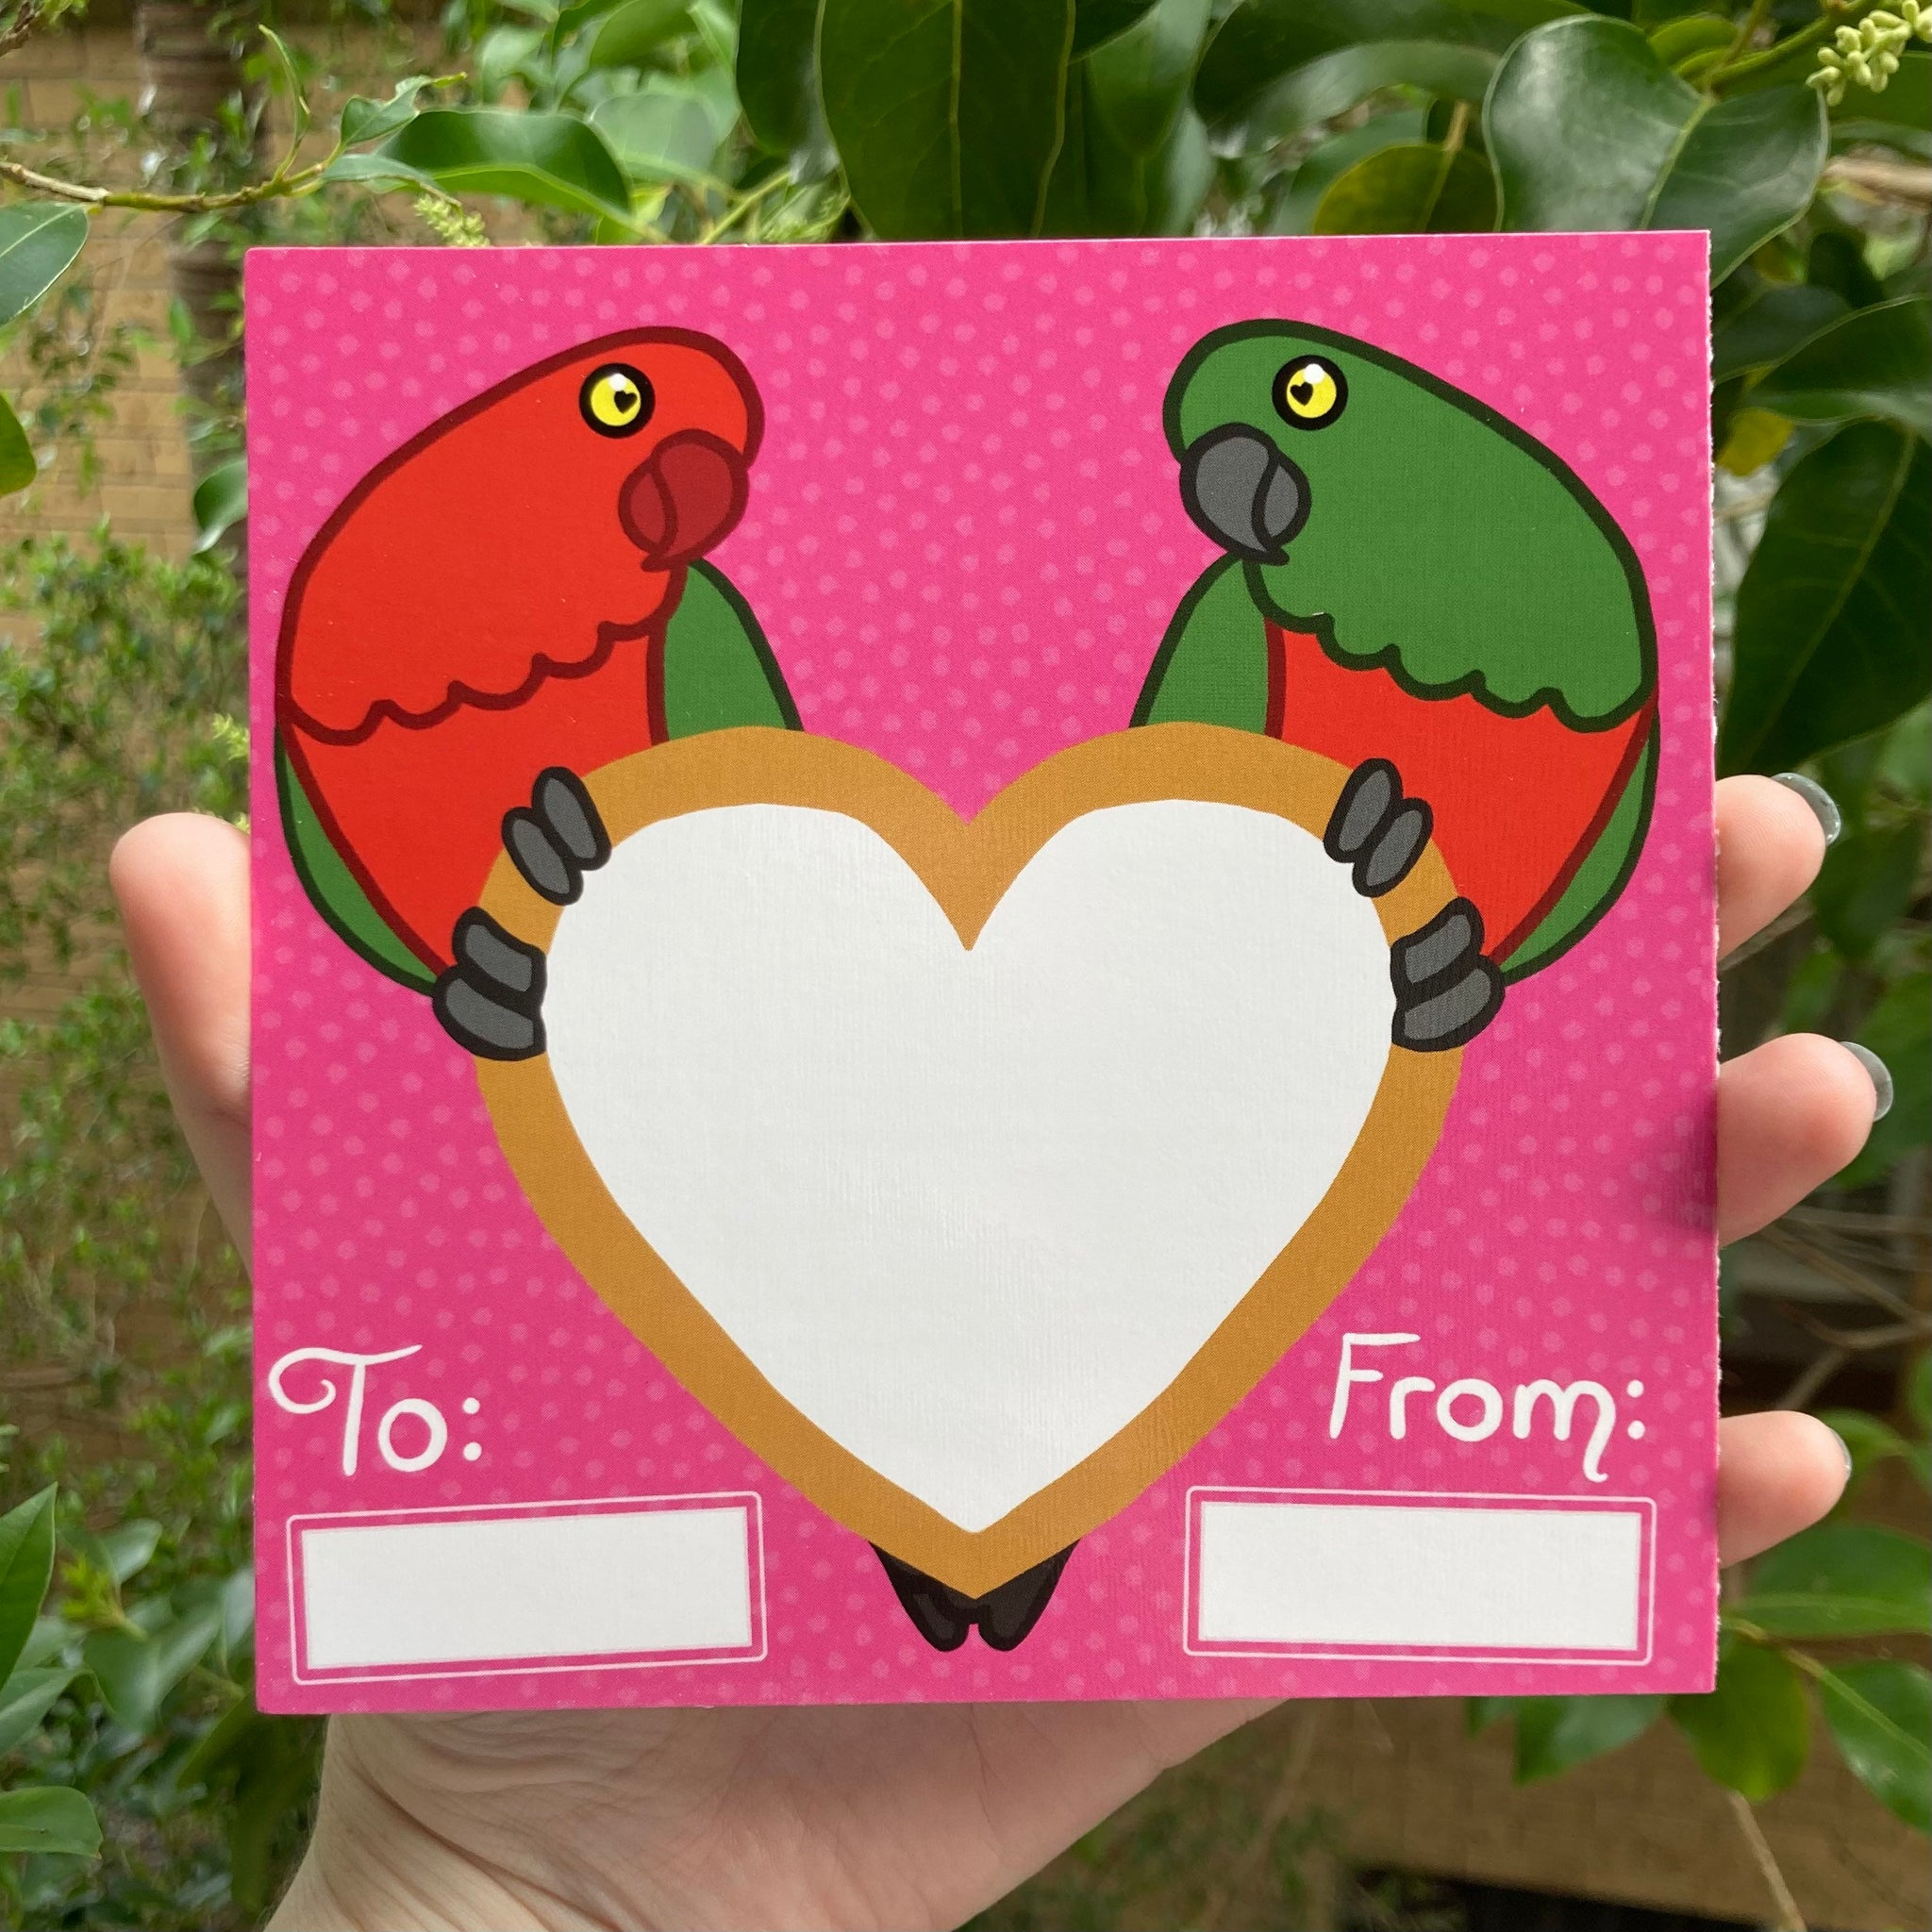 King Parrots Valentine's Day card - Secret Scratch-off Heart Shaped Sticker! LGBT Gay Lesbian Options Available, Envelope Included